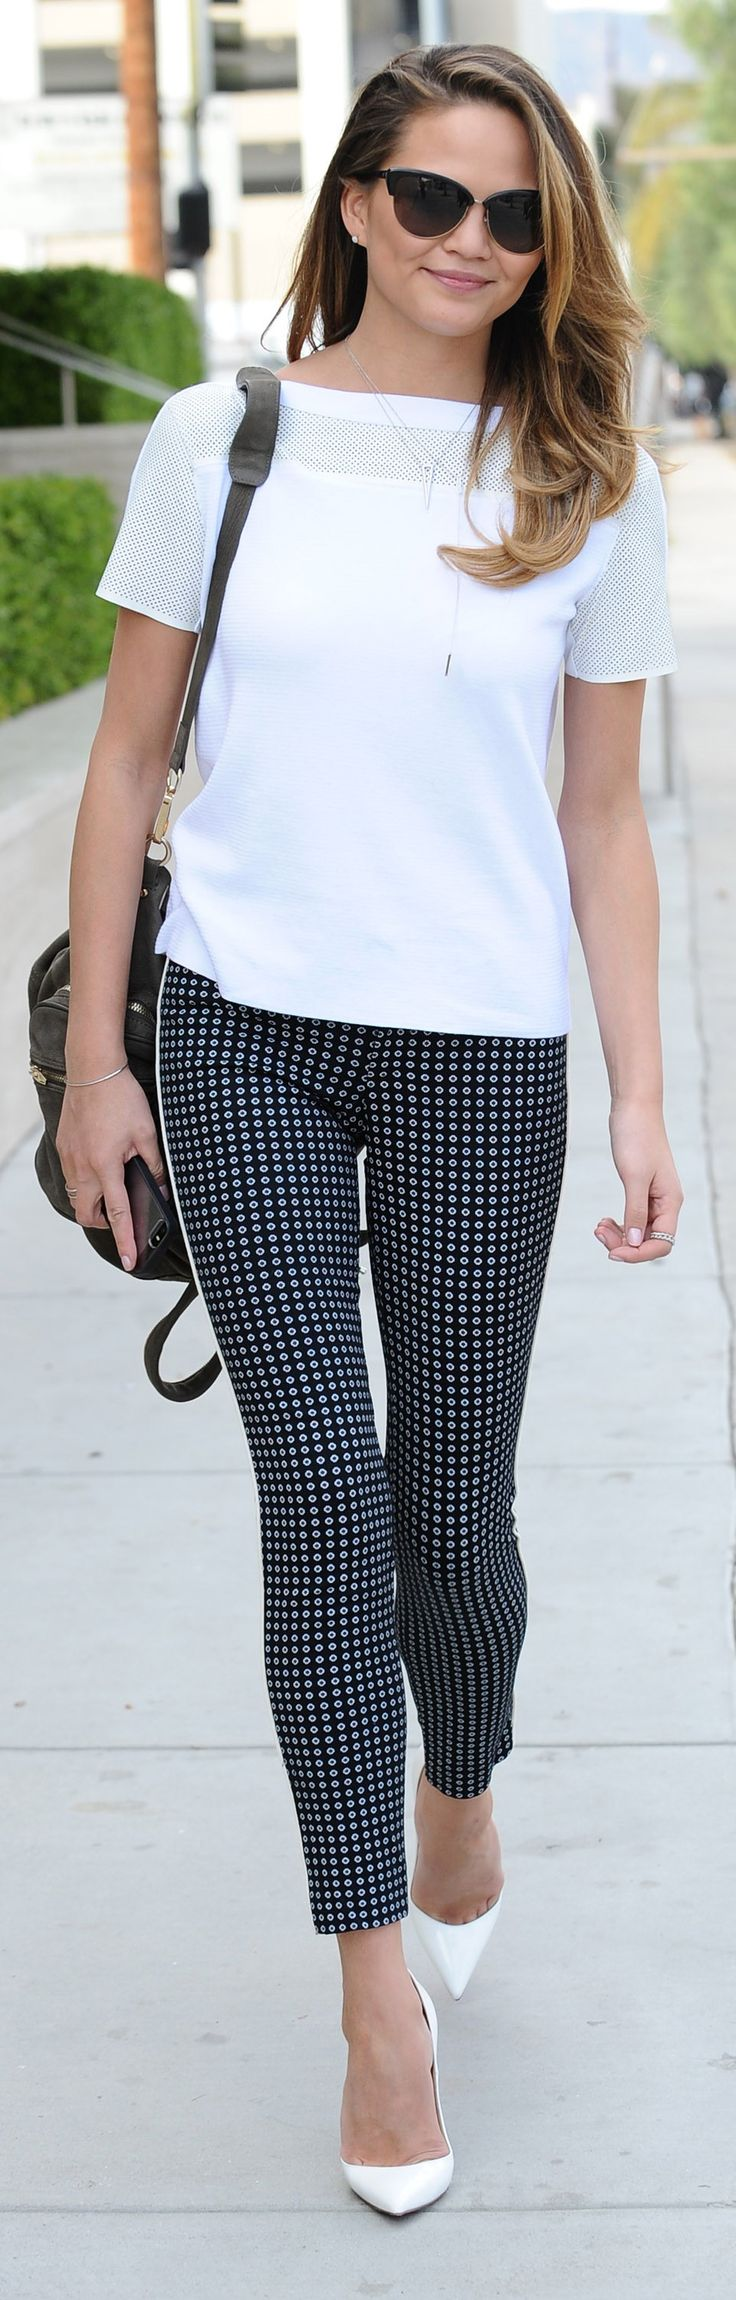 Classic. It's like a t-shir with style. I like the boat neck, neck line, the added design to the top, and the print on the pants. It's a small print which I could handle. Love it all!